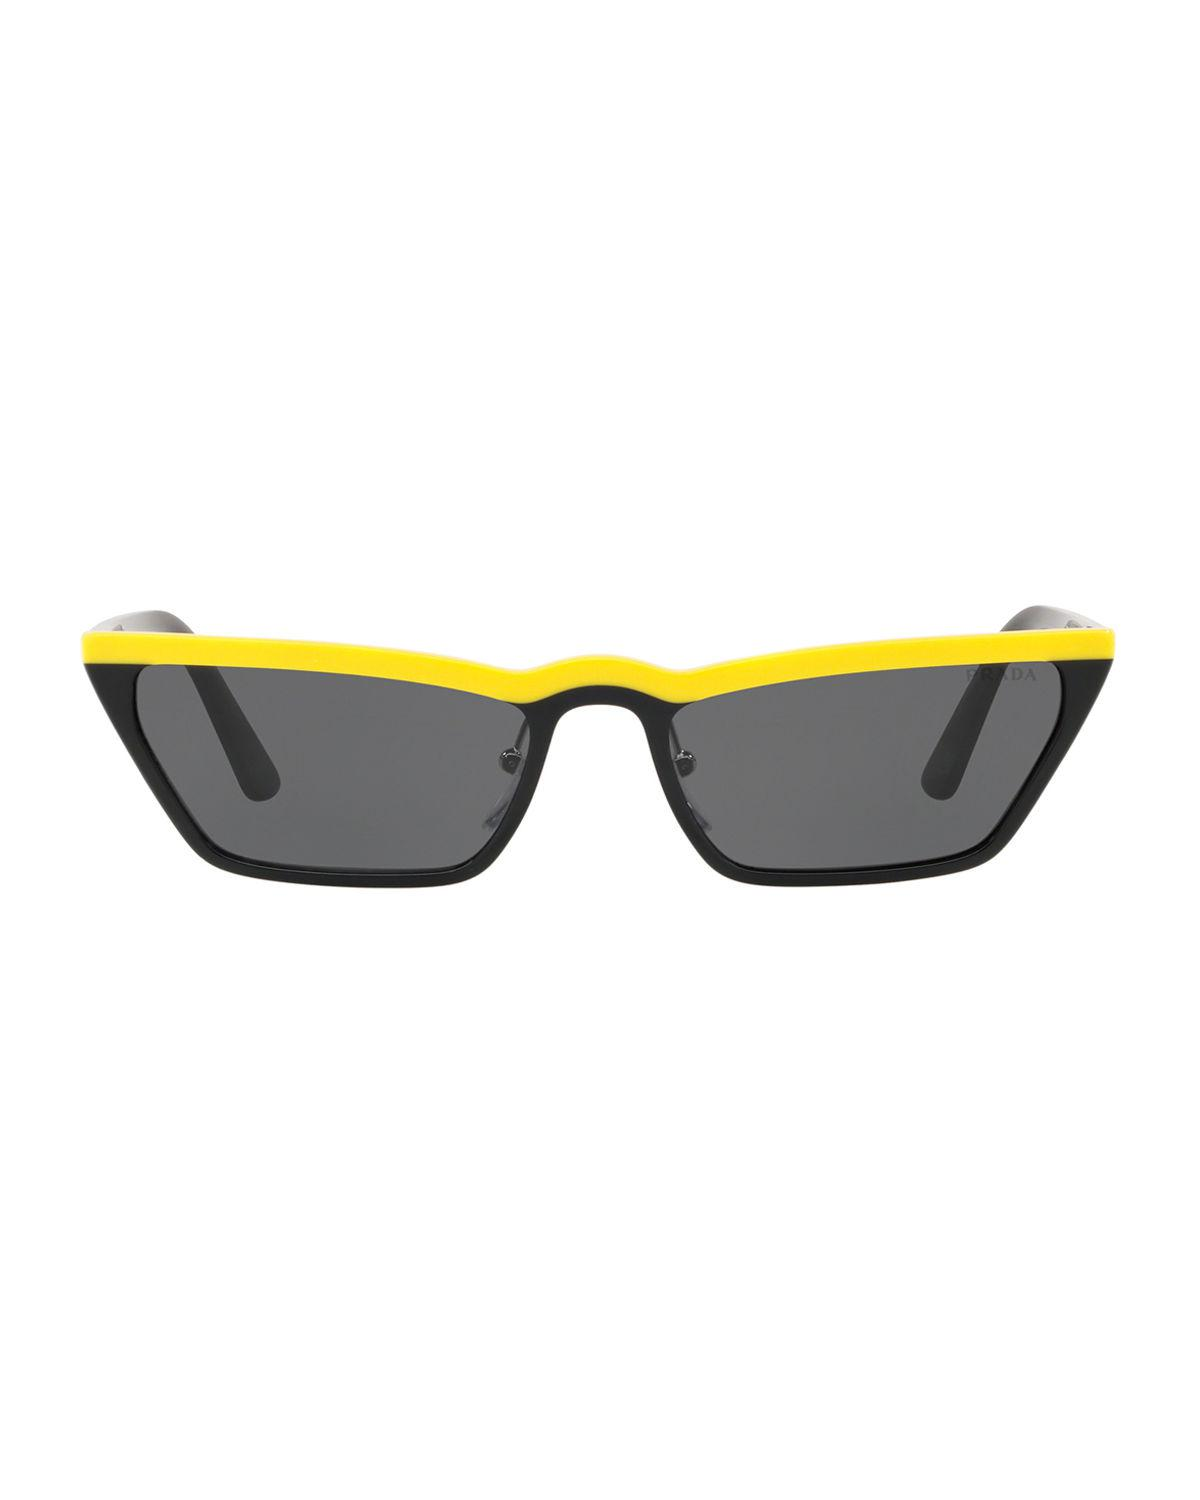 957d339b7ac5 Lyst - Prada Slim Acetate Cat-eye Sunglasses in Yellow